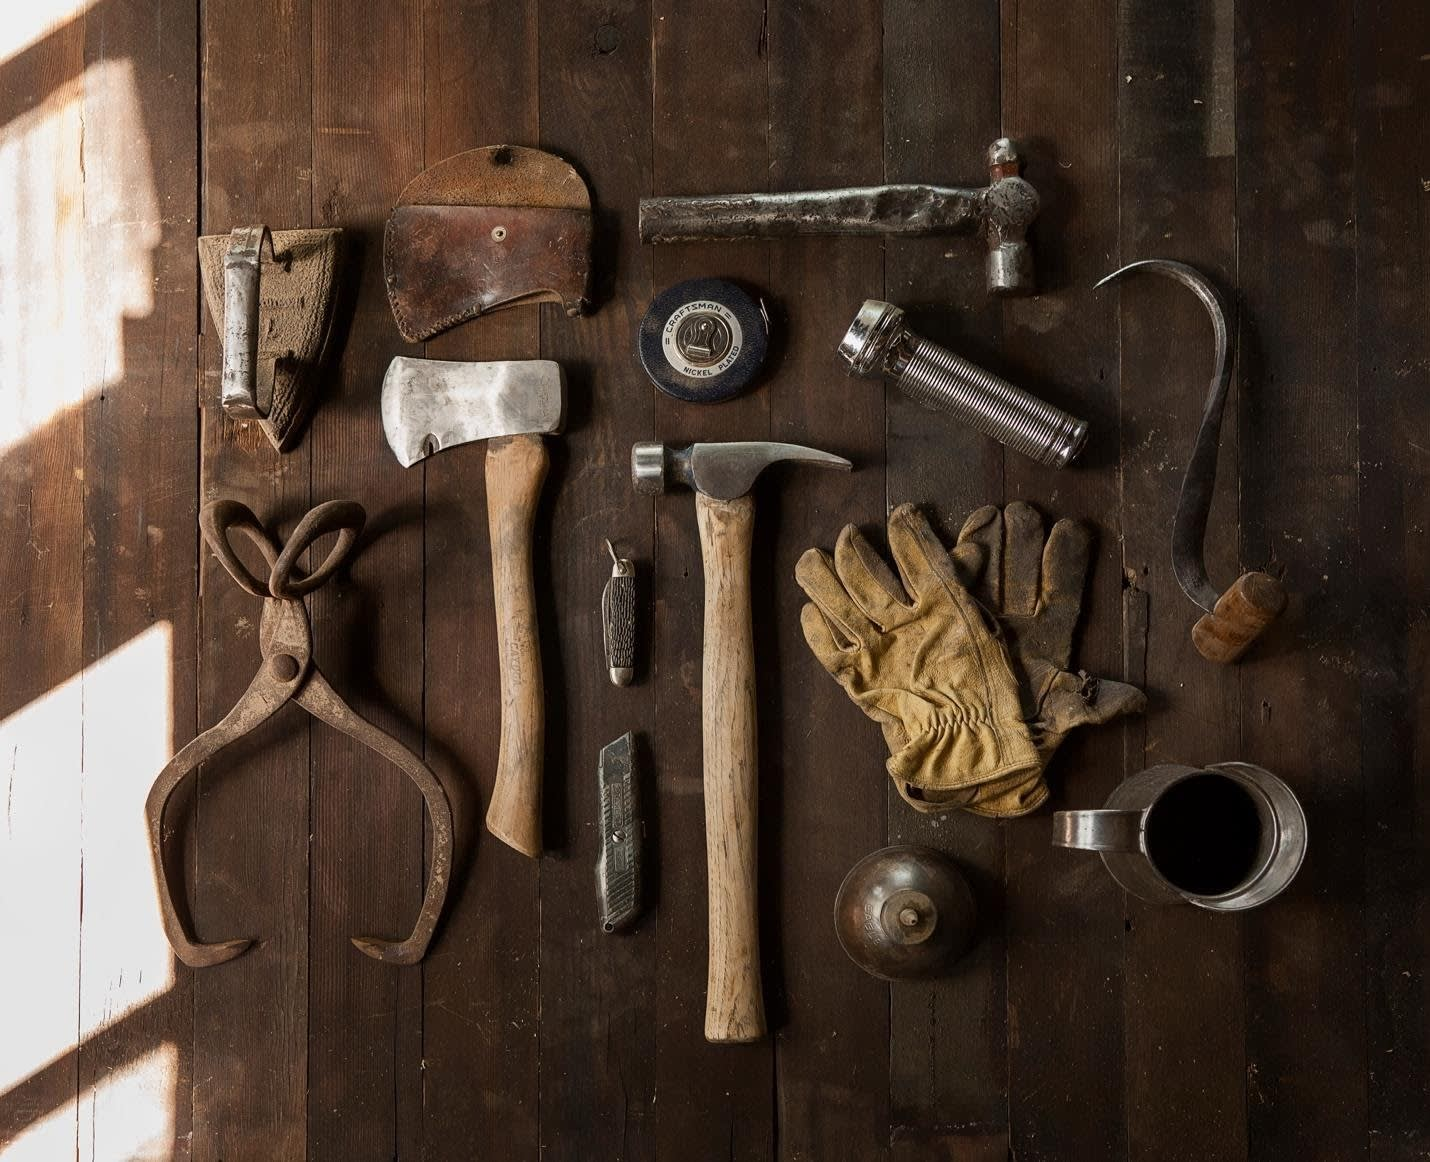 a table with tools on them, including a hammer, mallet, gloves, iron, and more